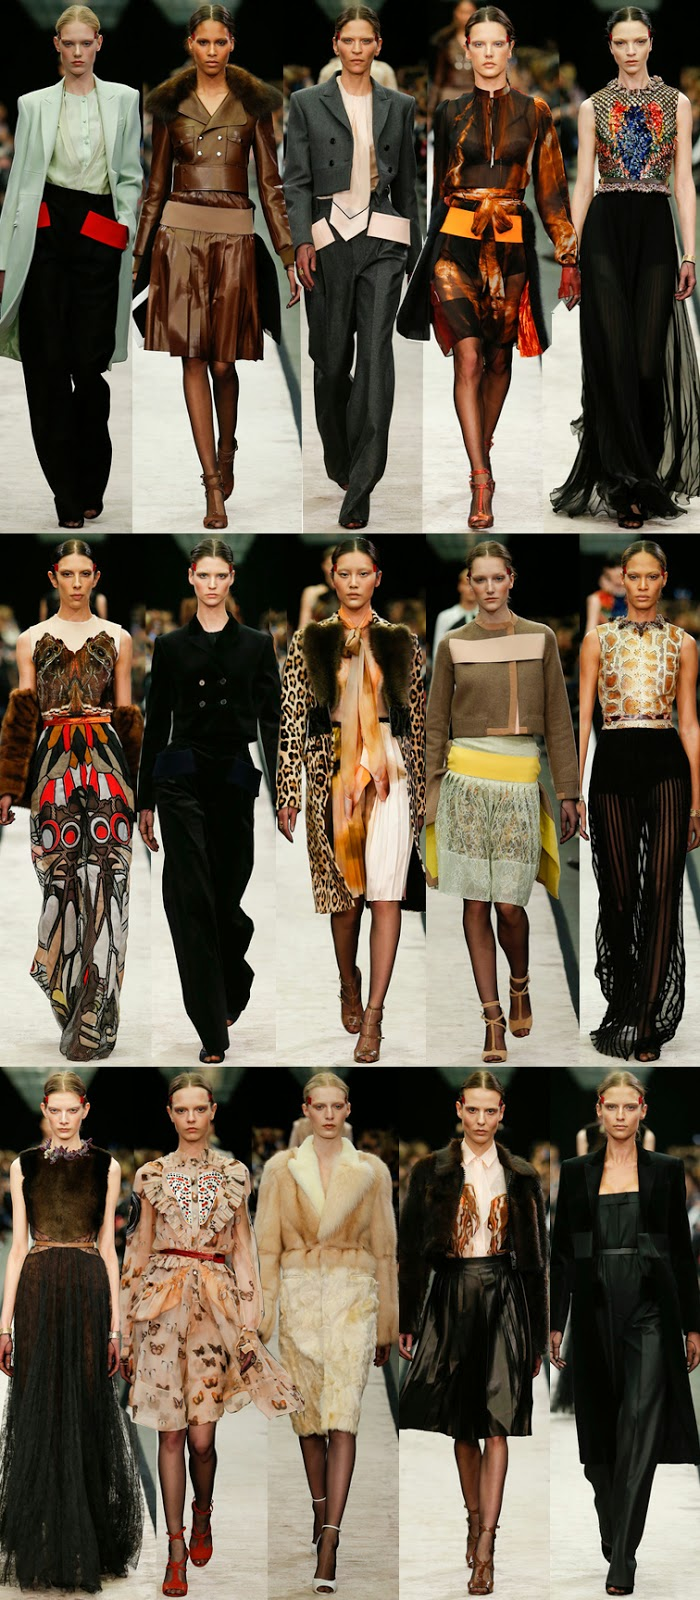 Givenchy by Riccardo Tisci fall winter 2014 runway collection, PFW, FW14, AW14, Paris fashion week